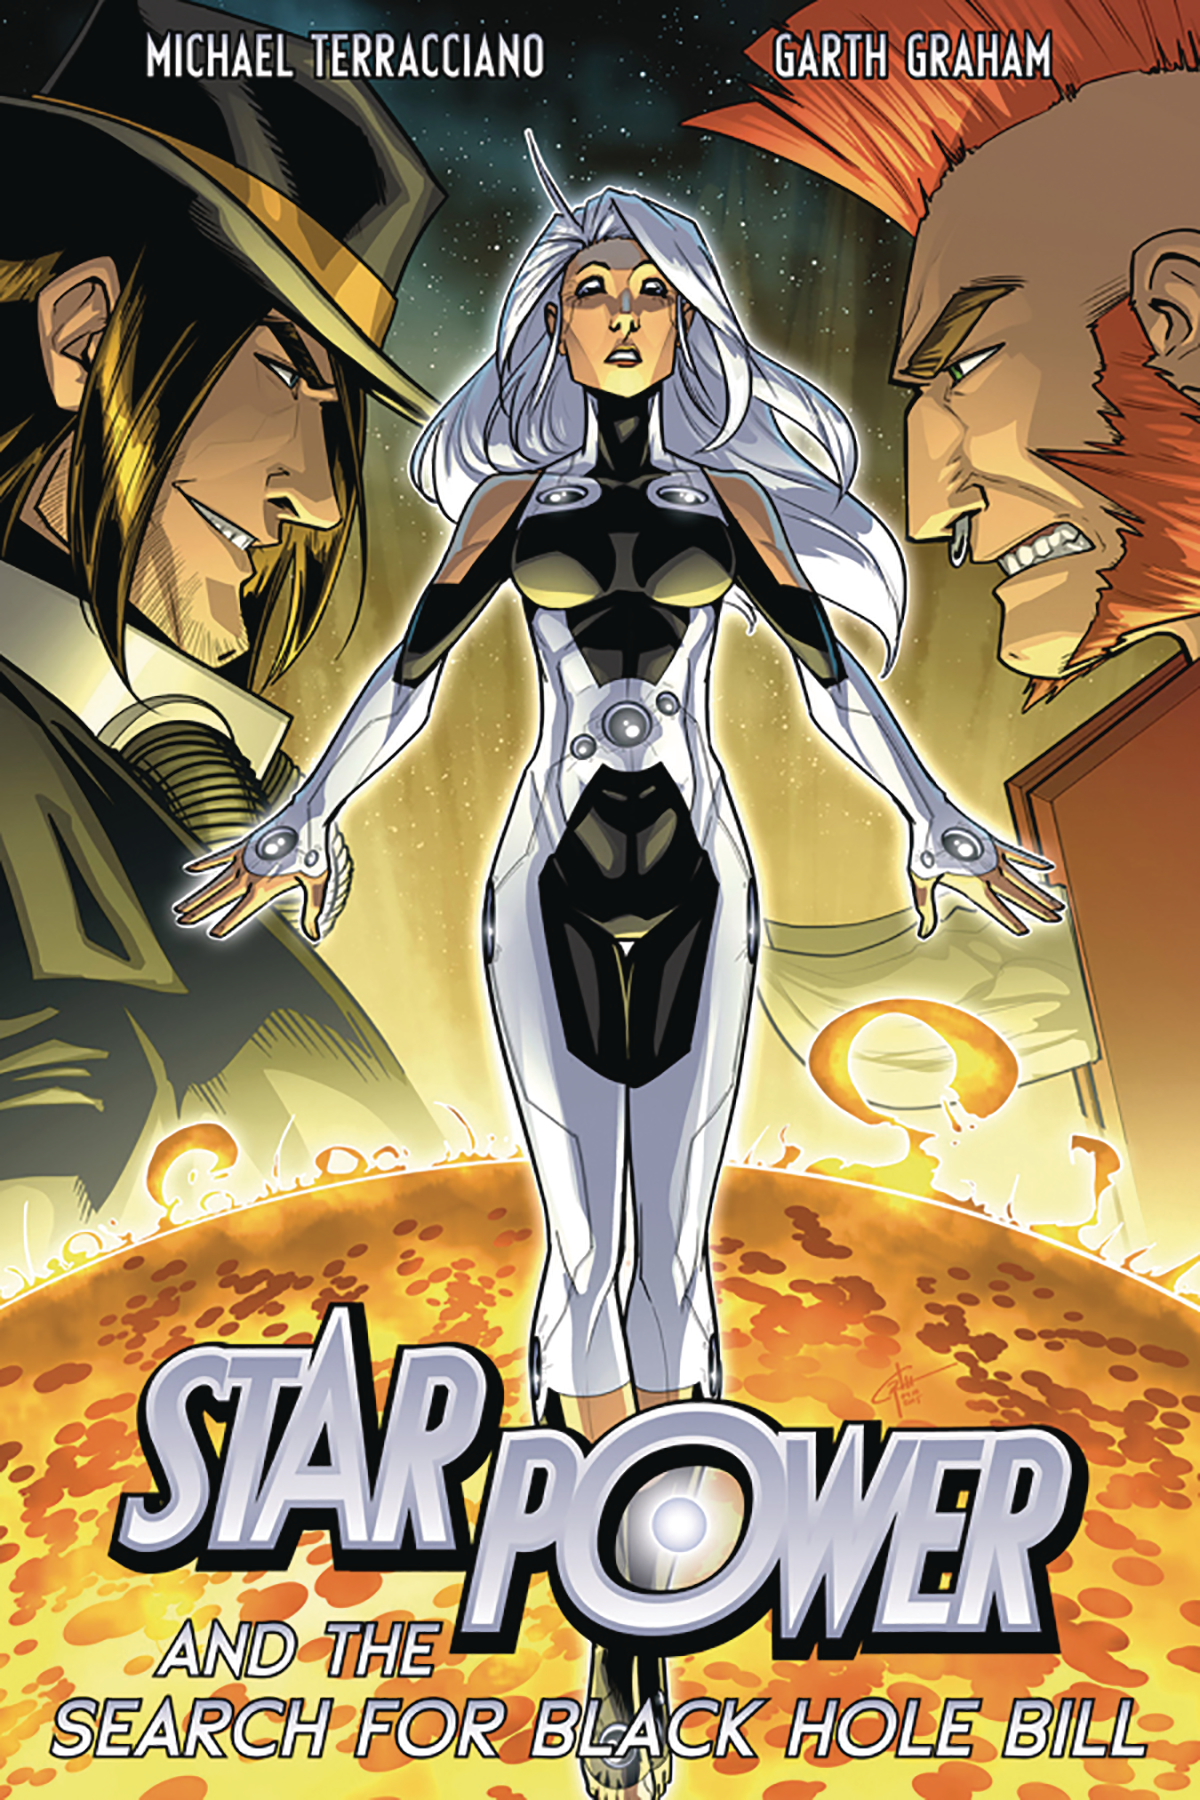 STAR POWER GN VOL 02 SEARCH FOR BLACK HOLE BILL